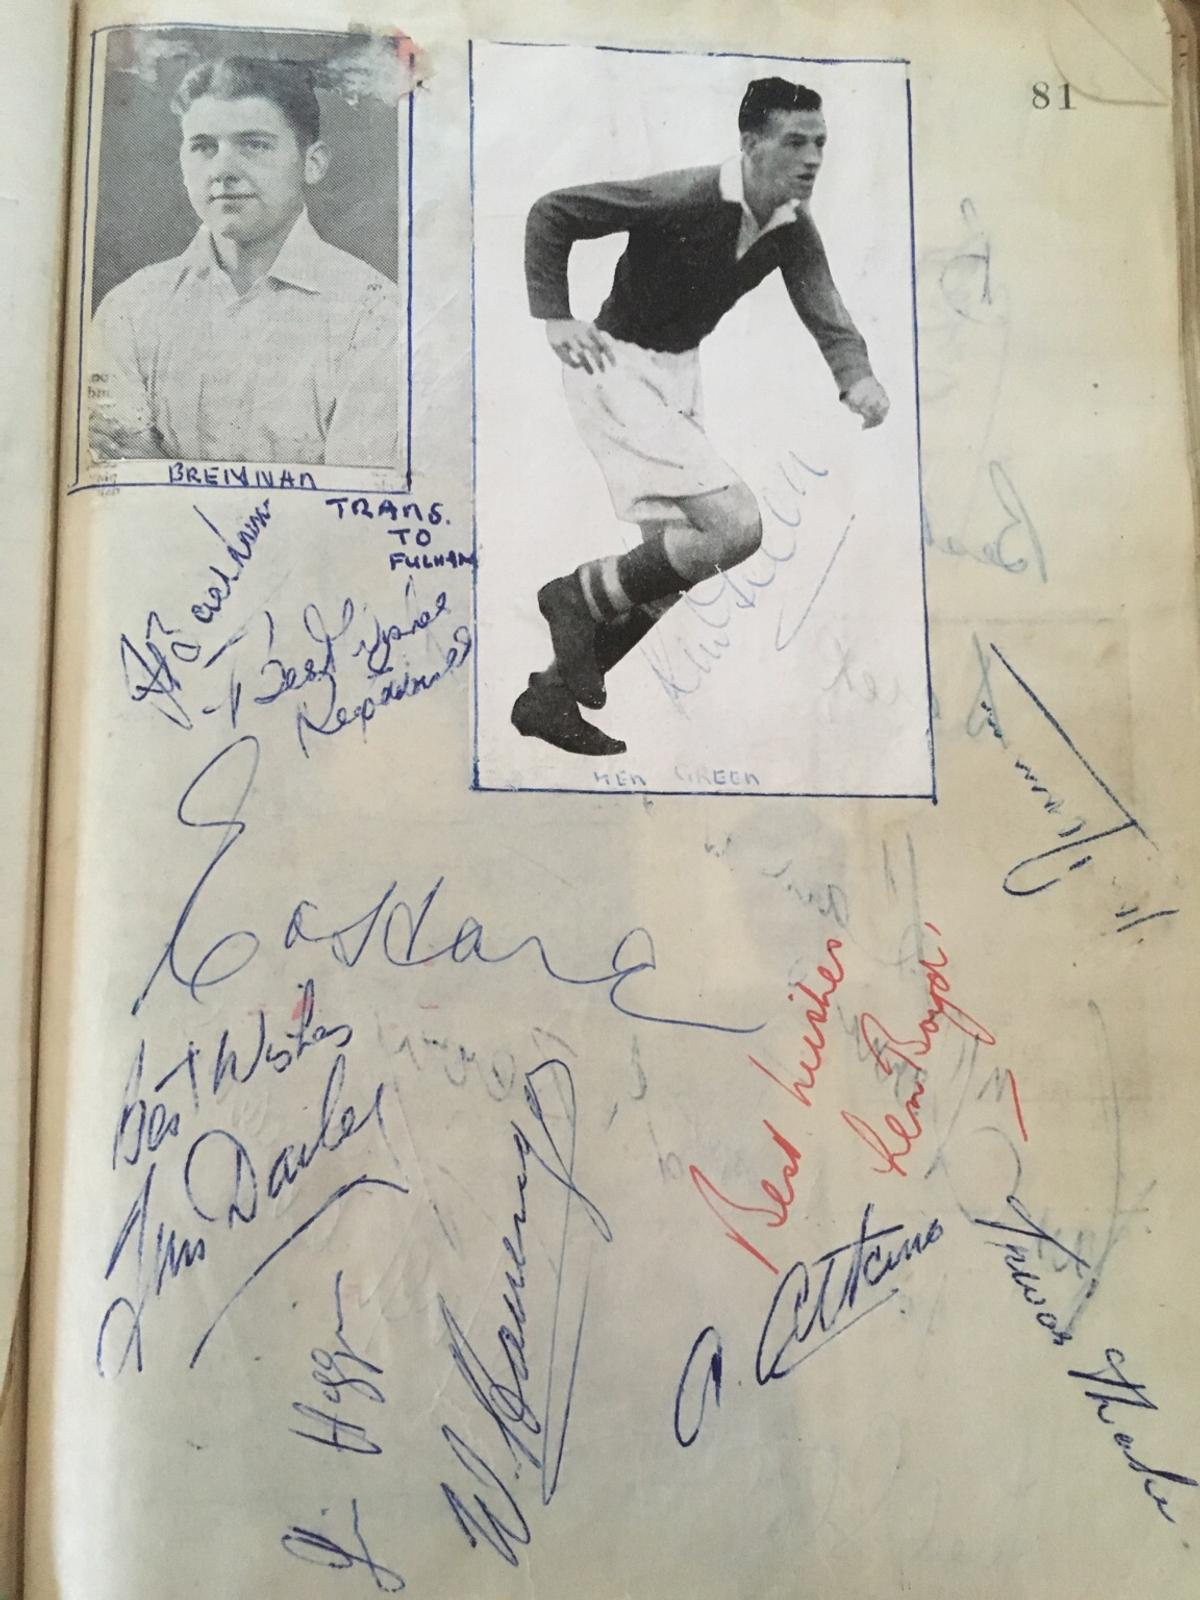 A large scrap book containing hundreds of signatures and cut out pictures of footballers of the time, with hundreds of signatures throughout, condition is used but signatures are good and varied with many famous names.